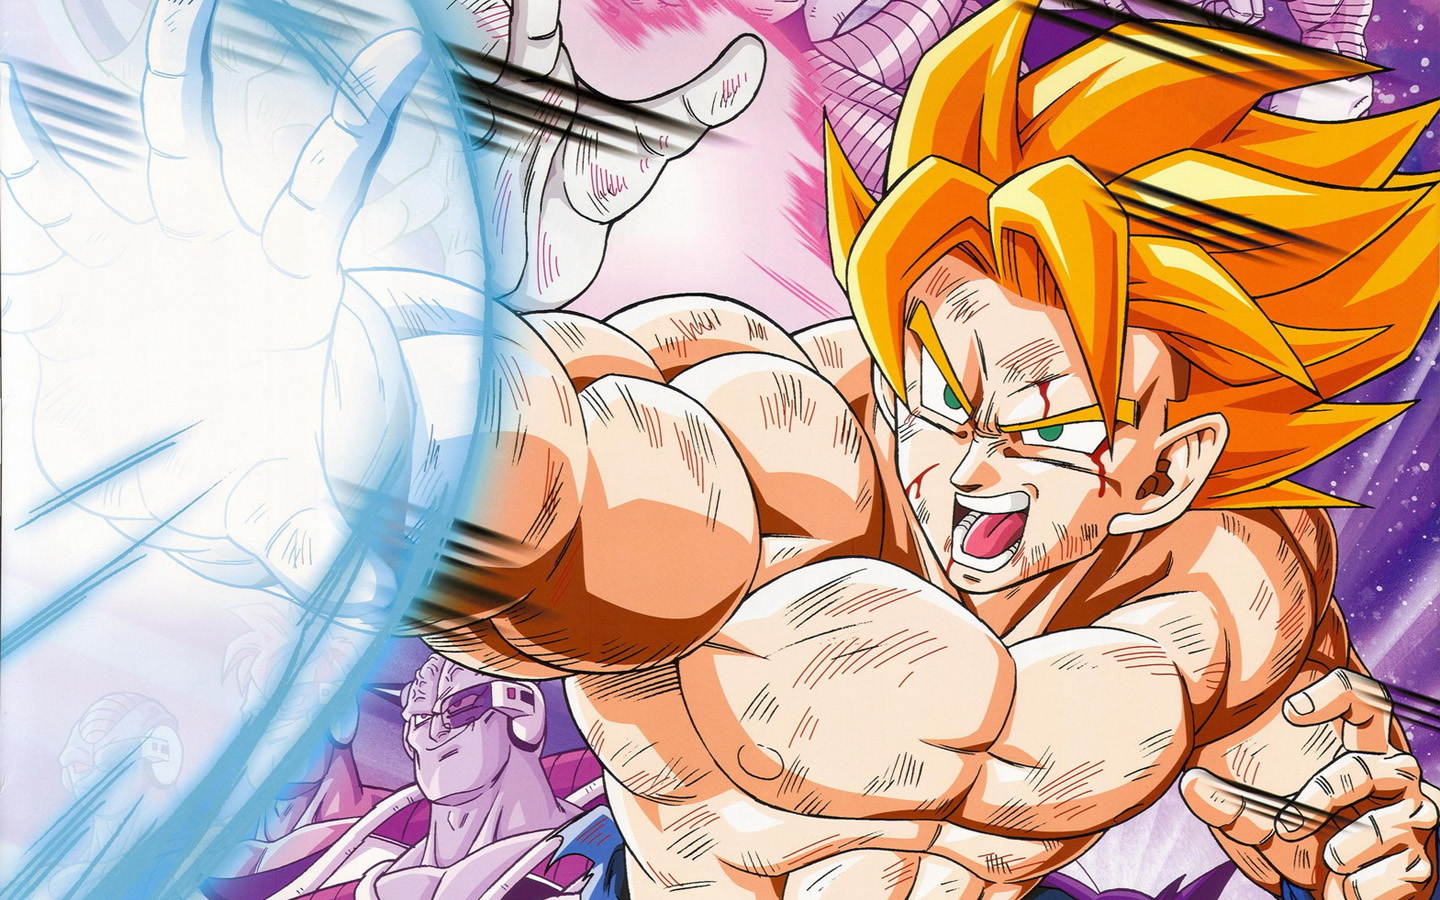 Dragon Ball Z Res: 1440x900 / Size:554kb. Views: 1995222